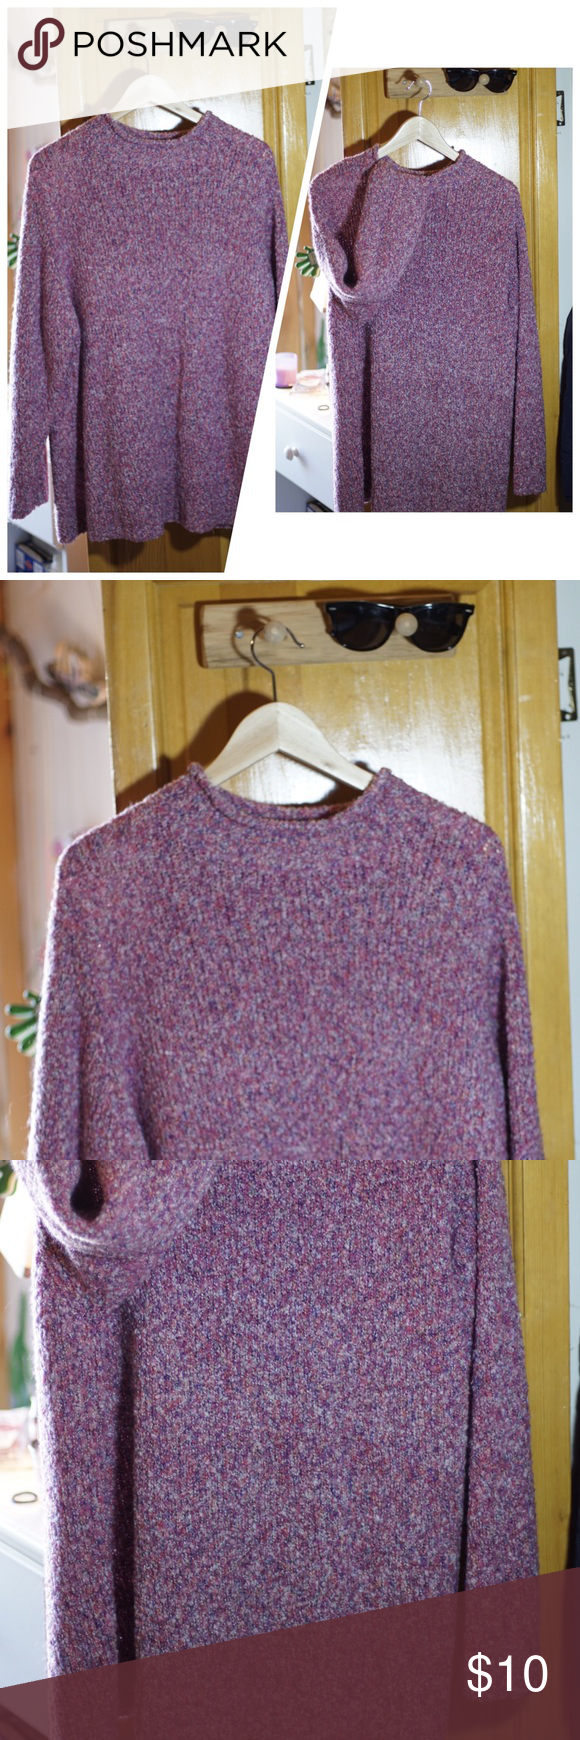 Purple sweater size L Purple sweater this is perfect for fall and winter ❄️ is used it with some leggings and it's amazingly cozy through the chili months. USED GOOD CONDITION No TRADES  SIZE L Unknown Sweaters Crew & Scoop Necks